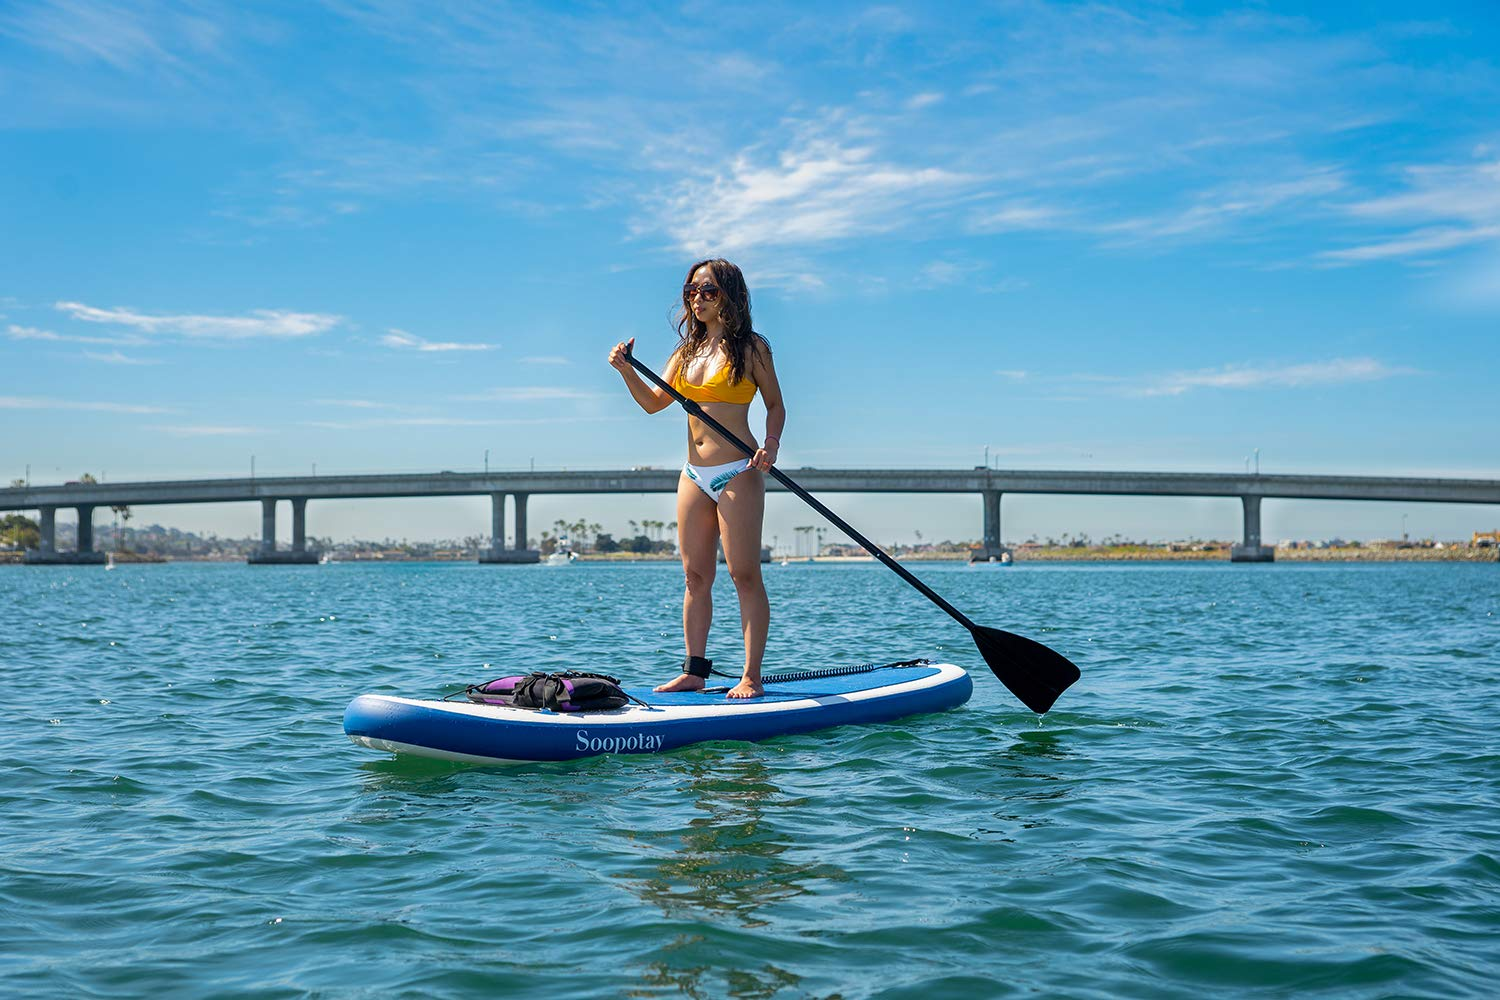 Inflatable SUP Stand Up Paddle Board, Inflatable SUP Board, iSUP Package with All Accessories (All Round Primary-Navy Blue-10' x 32'' x 6'') by Soopotay (Image #4)